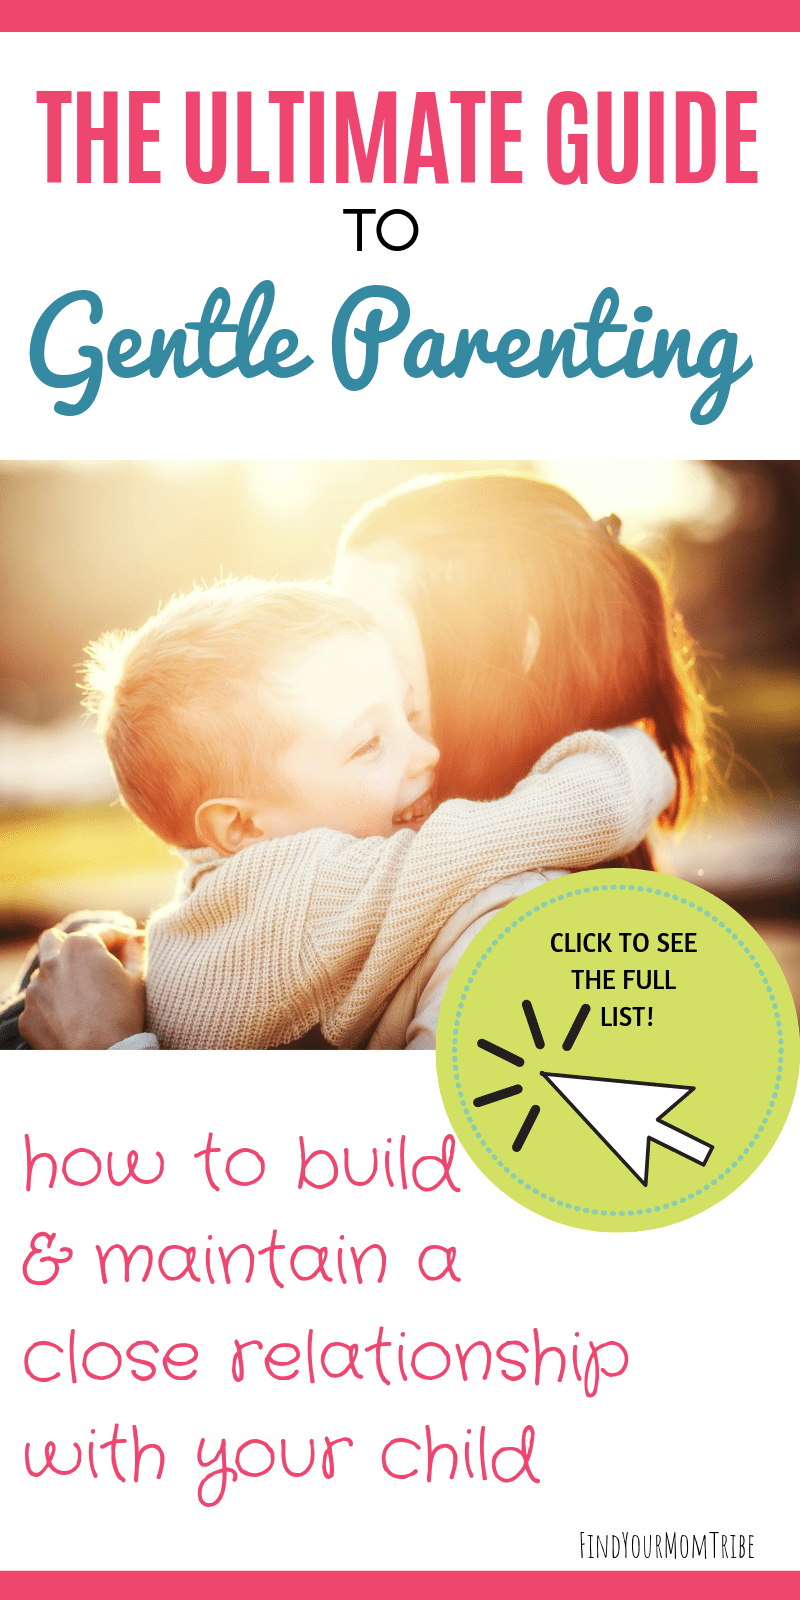 The Ultimate Guide to Gentle Parenting